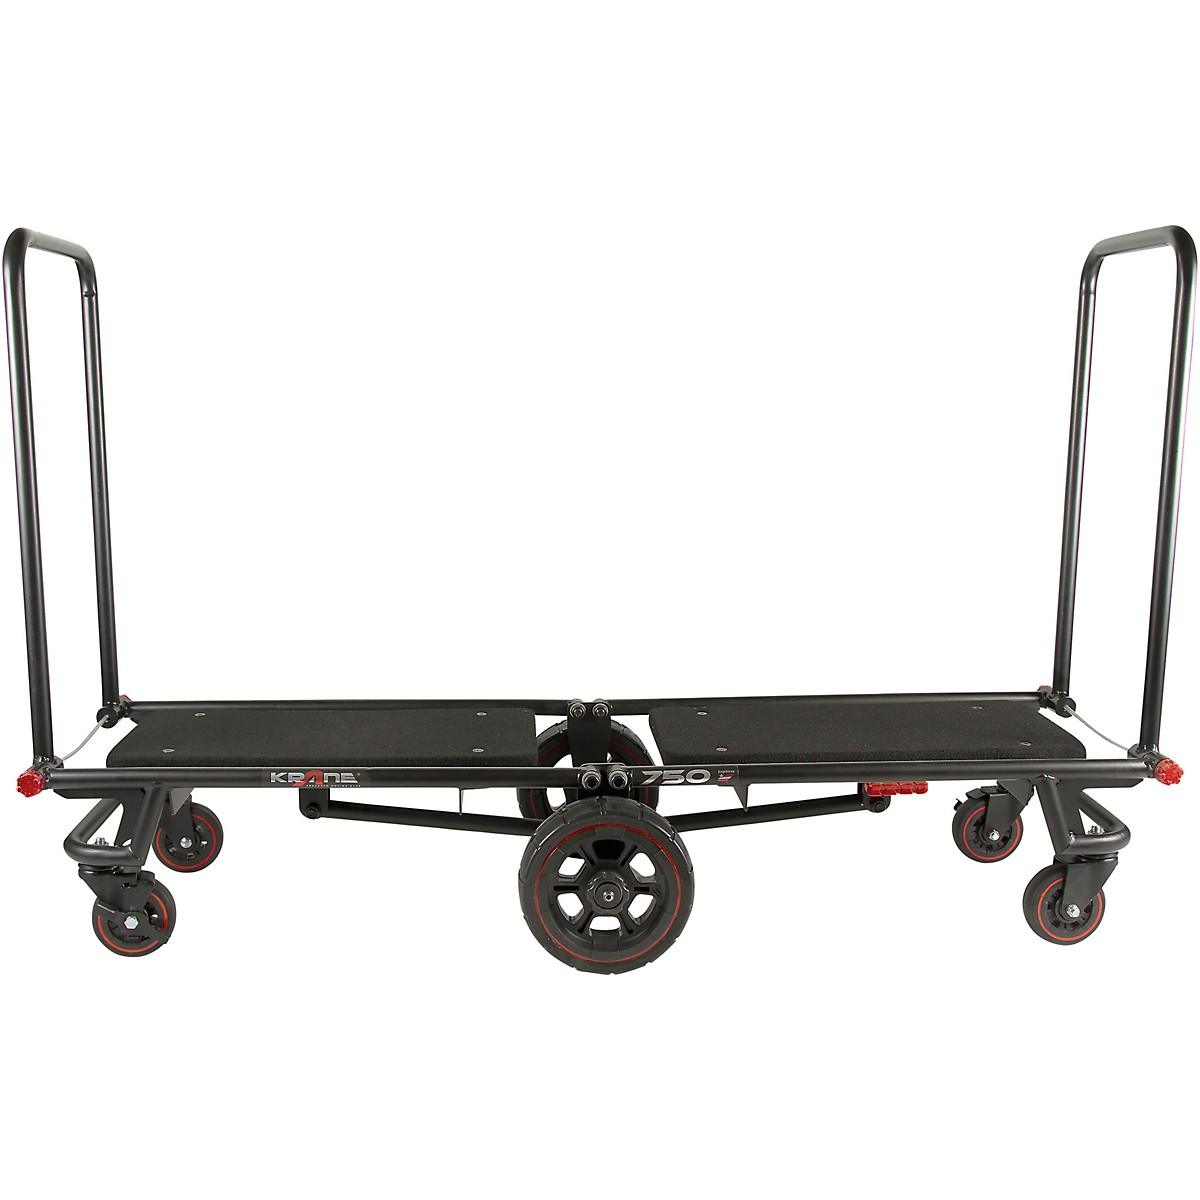 Krane AMG 750 Heavy-Duty Utility Cart